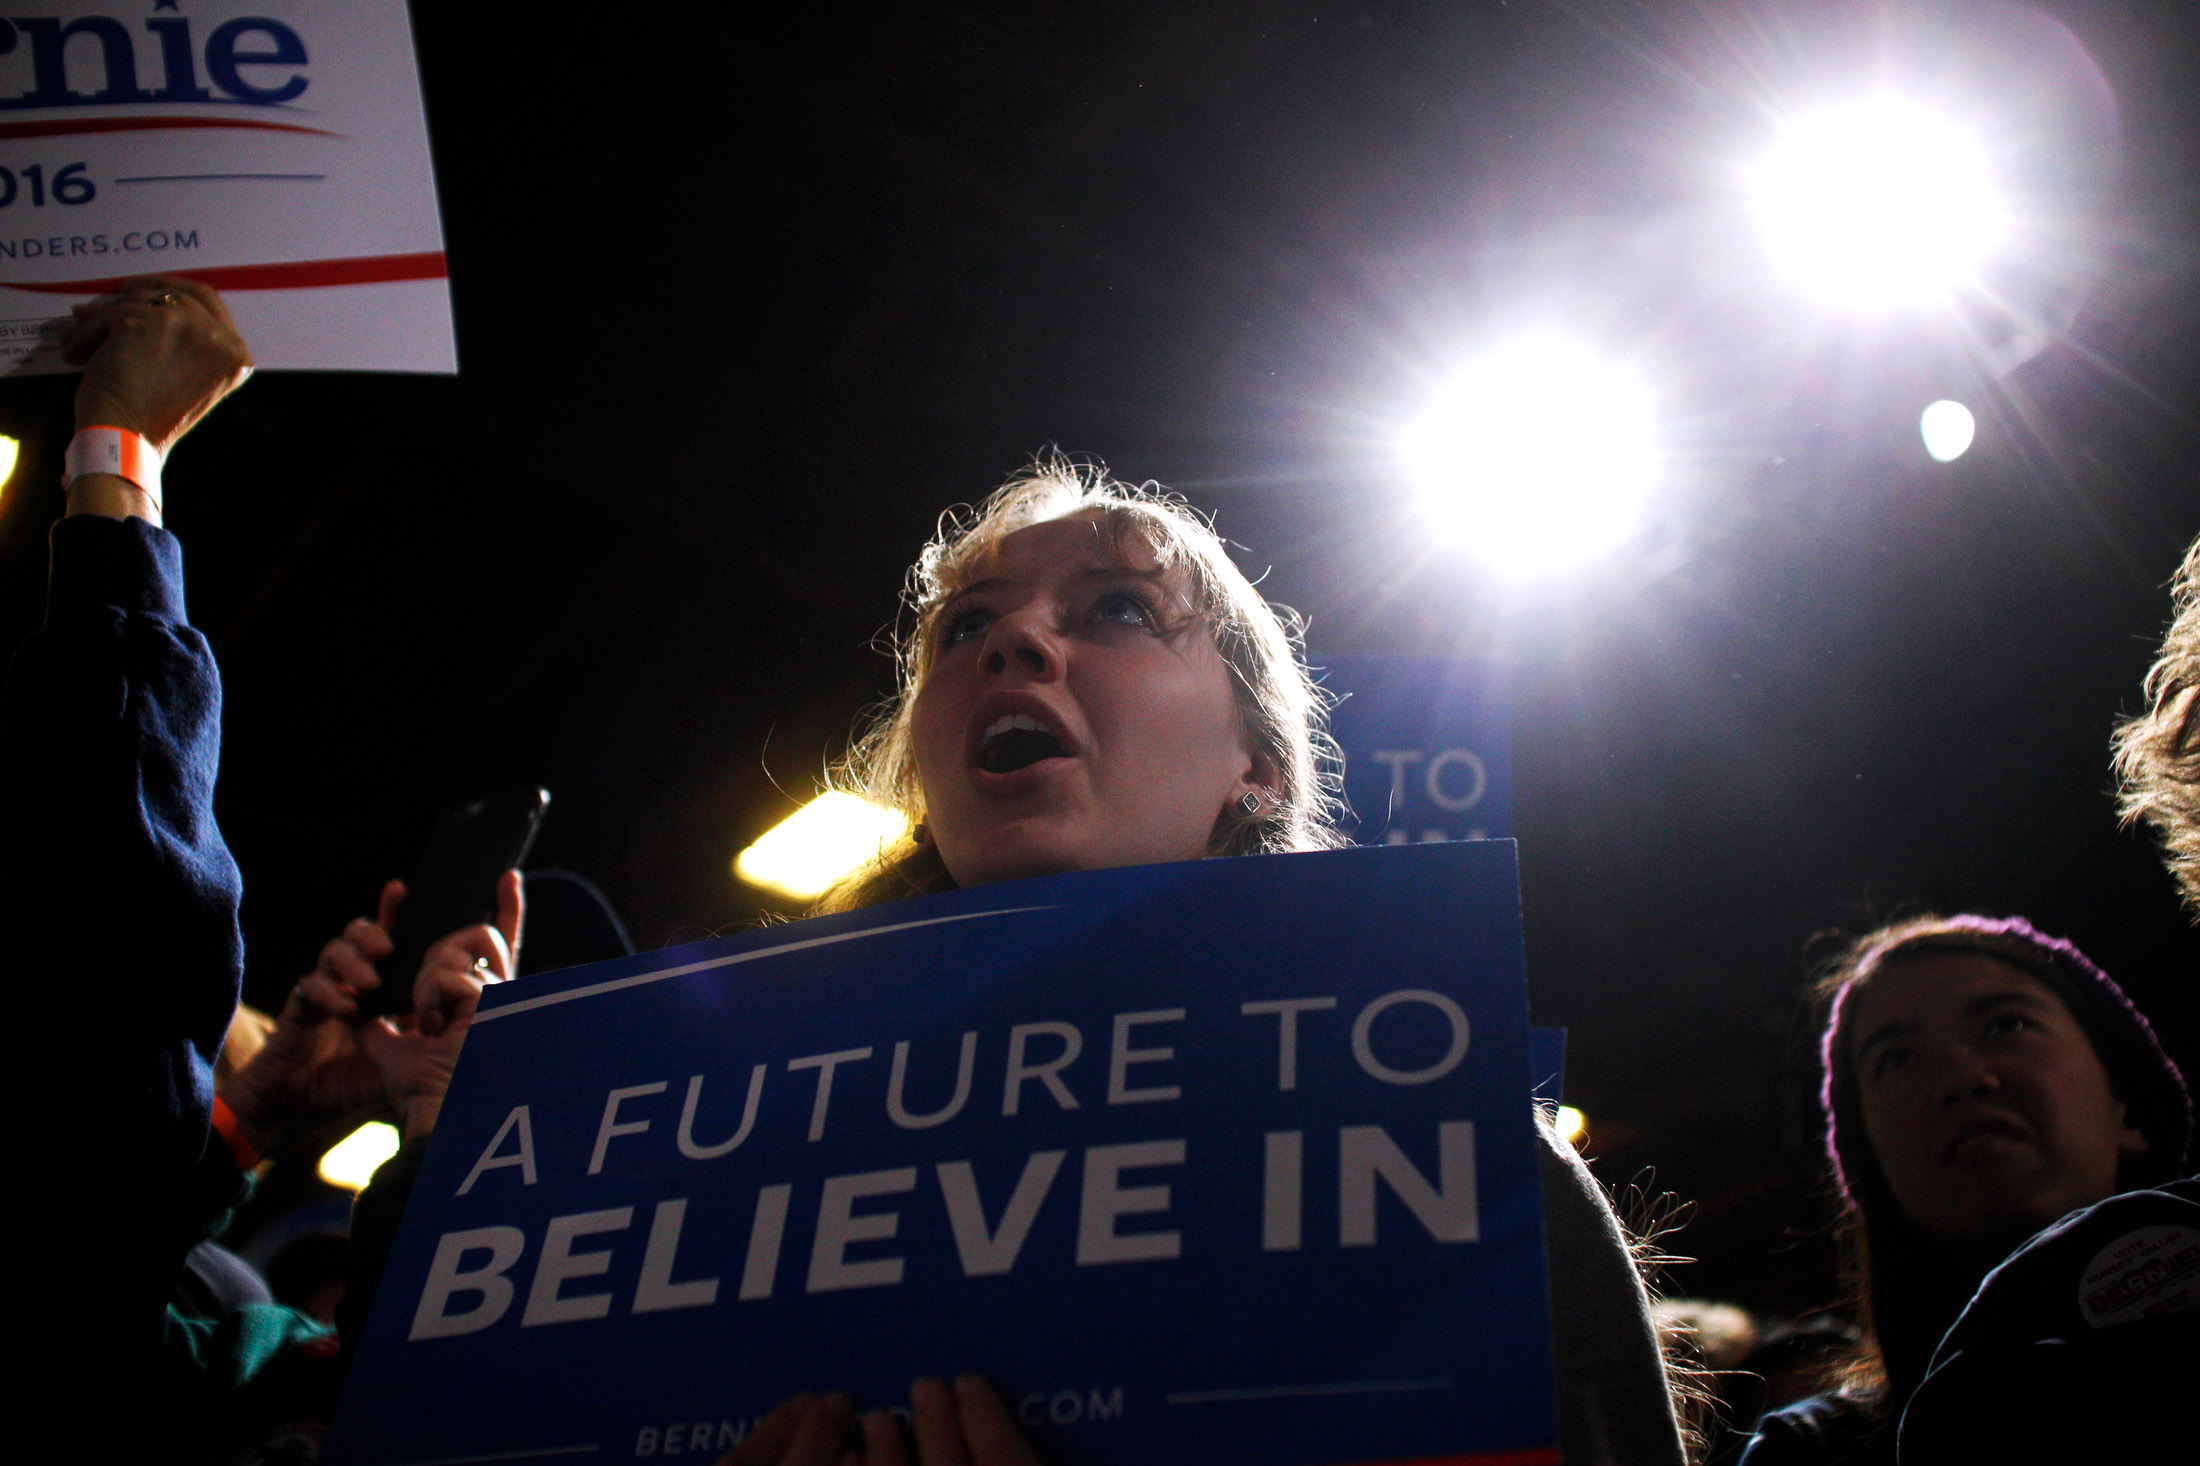 Supporters of Democratic presidential candidate Bernie Sanders waves signs and cheer while the candidate speaks at a Super Tuesday rally at the Champlain Valley Exposition in Essex Junction, Vermont on March 1, 2016.